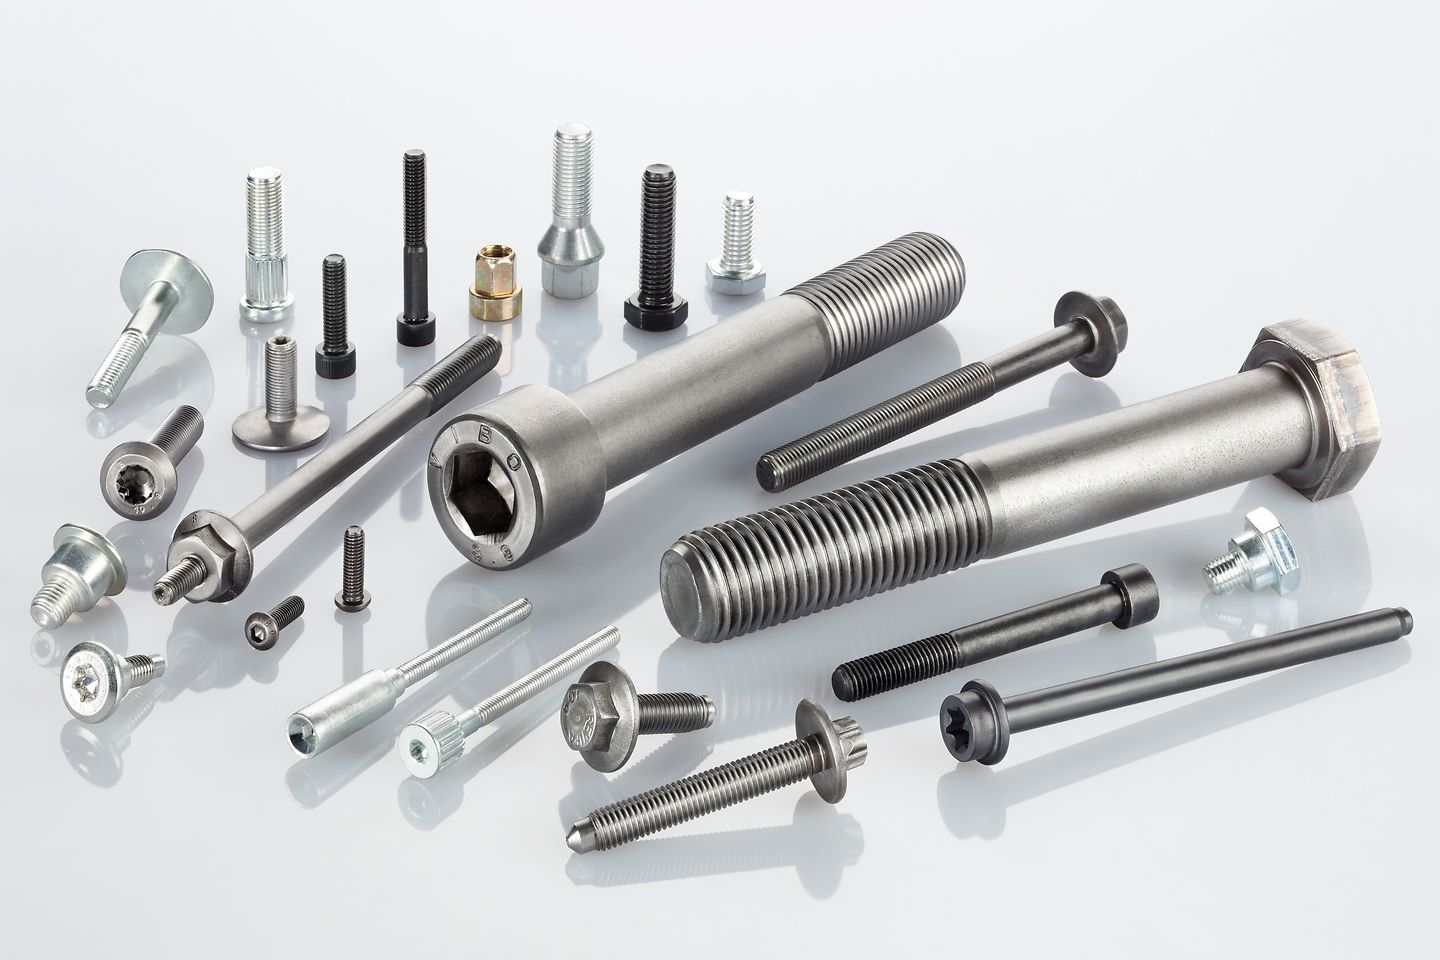 Bonderite L-FM FL portfolio of polymeric coatings is used for the production of metal working parts such as screws